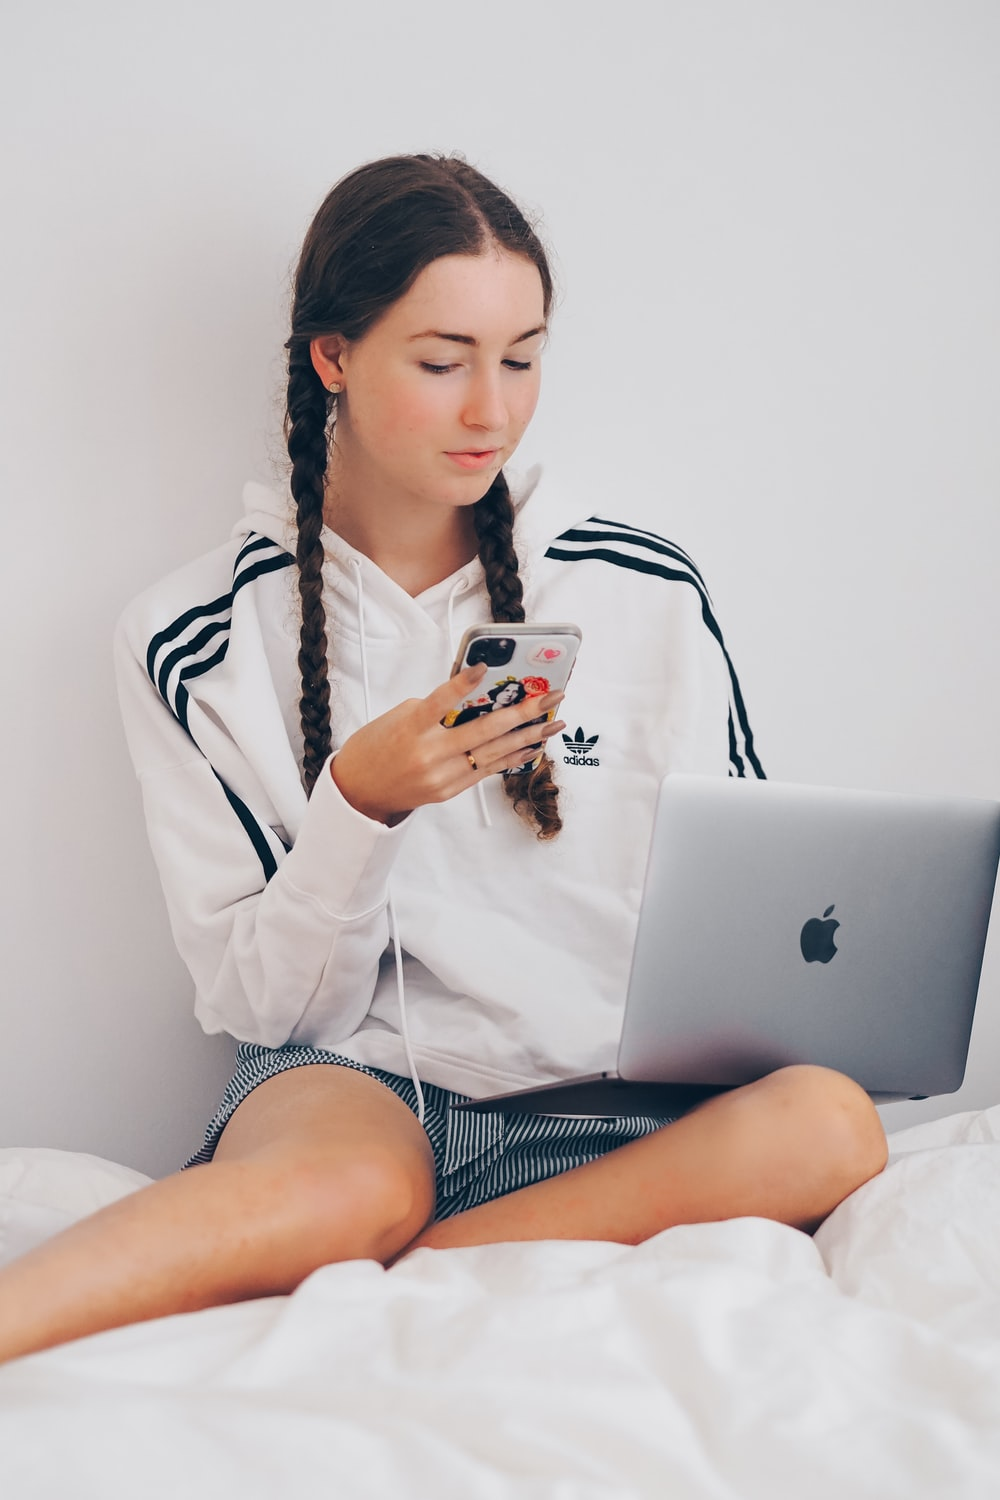 woman in white coat sitting on bed using silver macbook